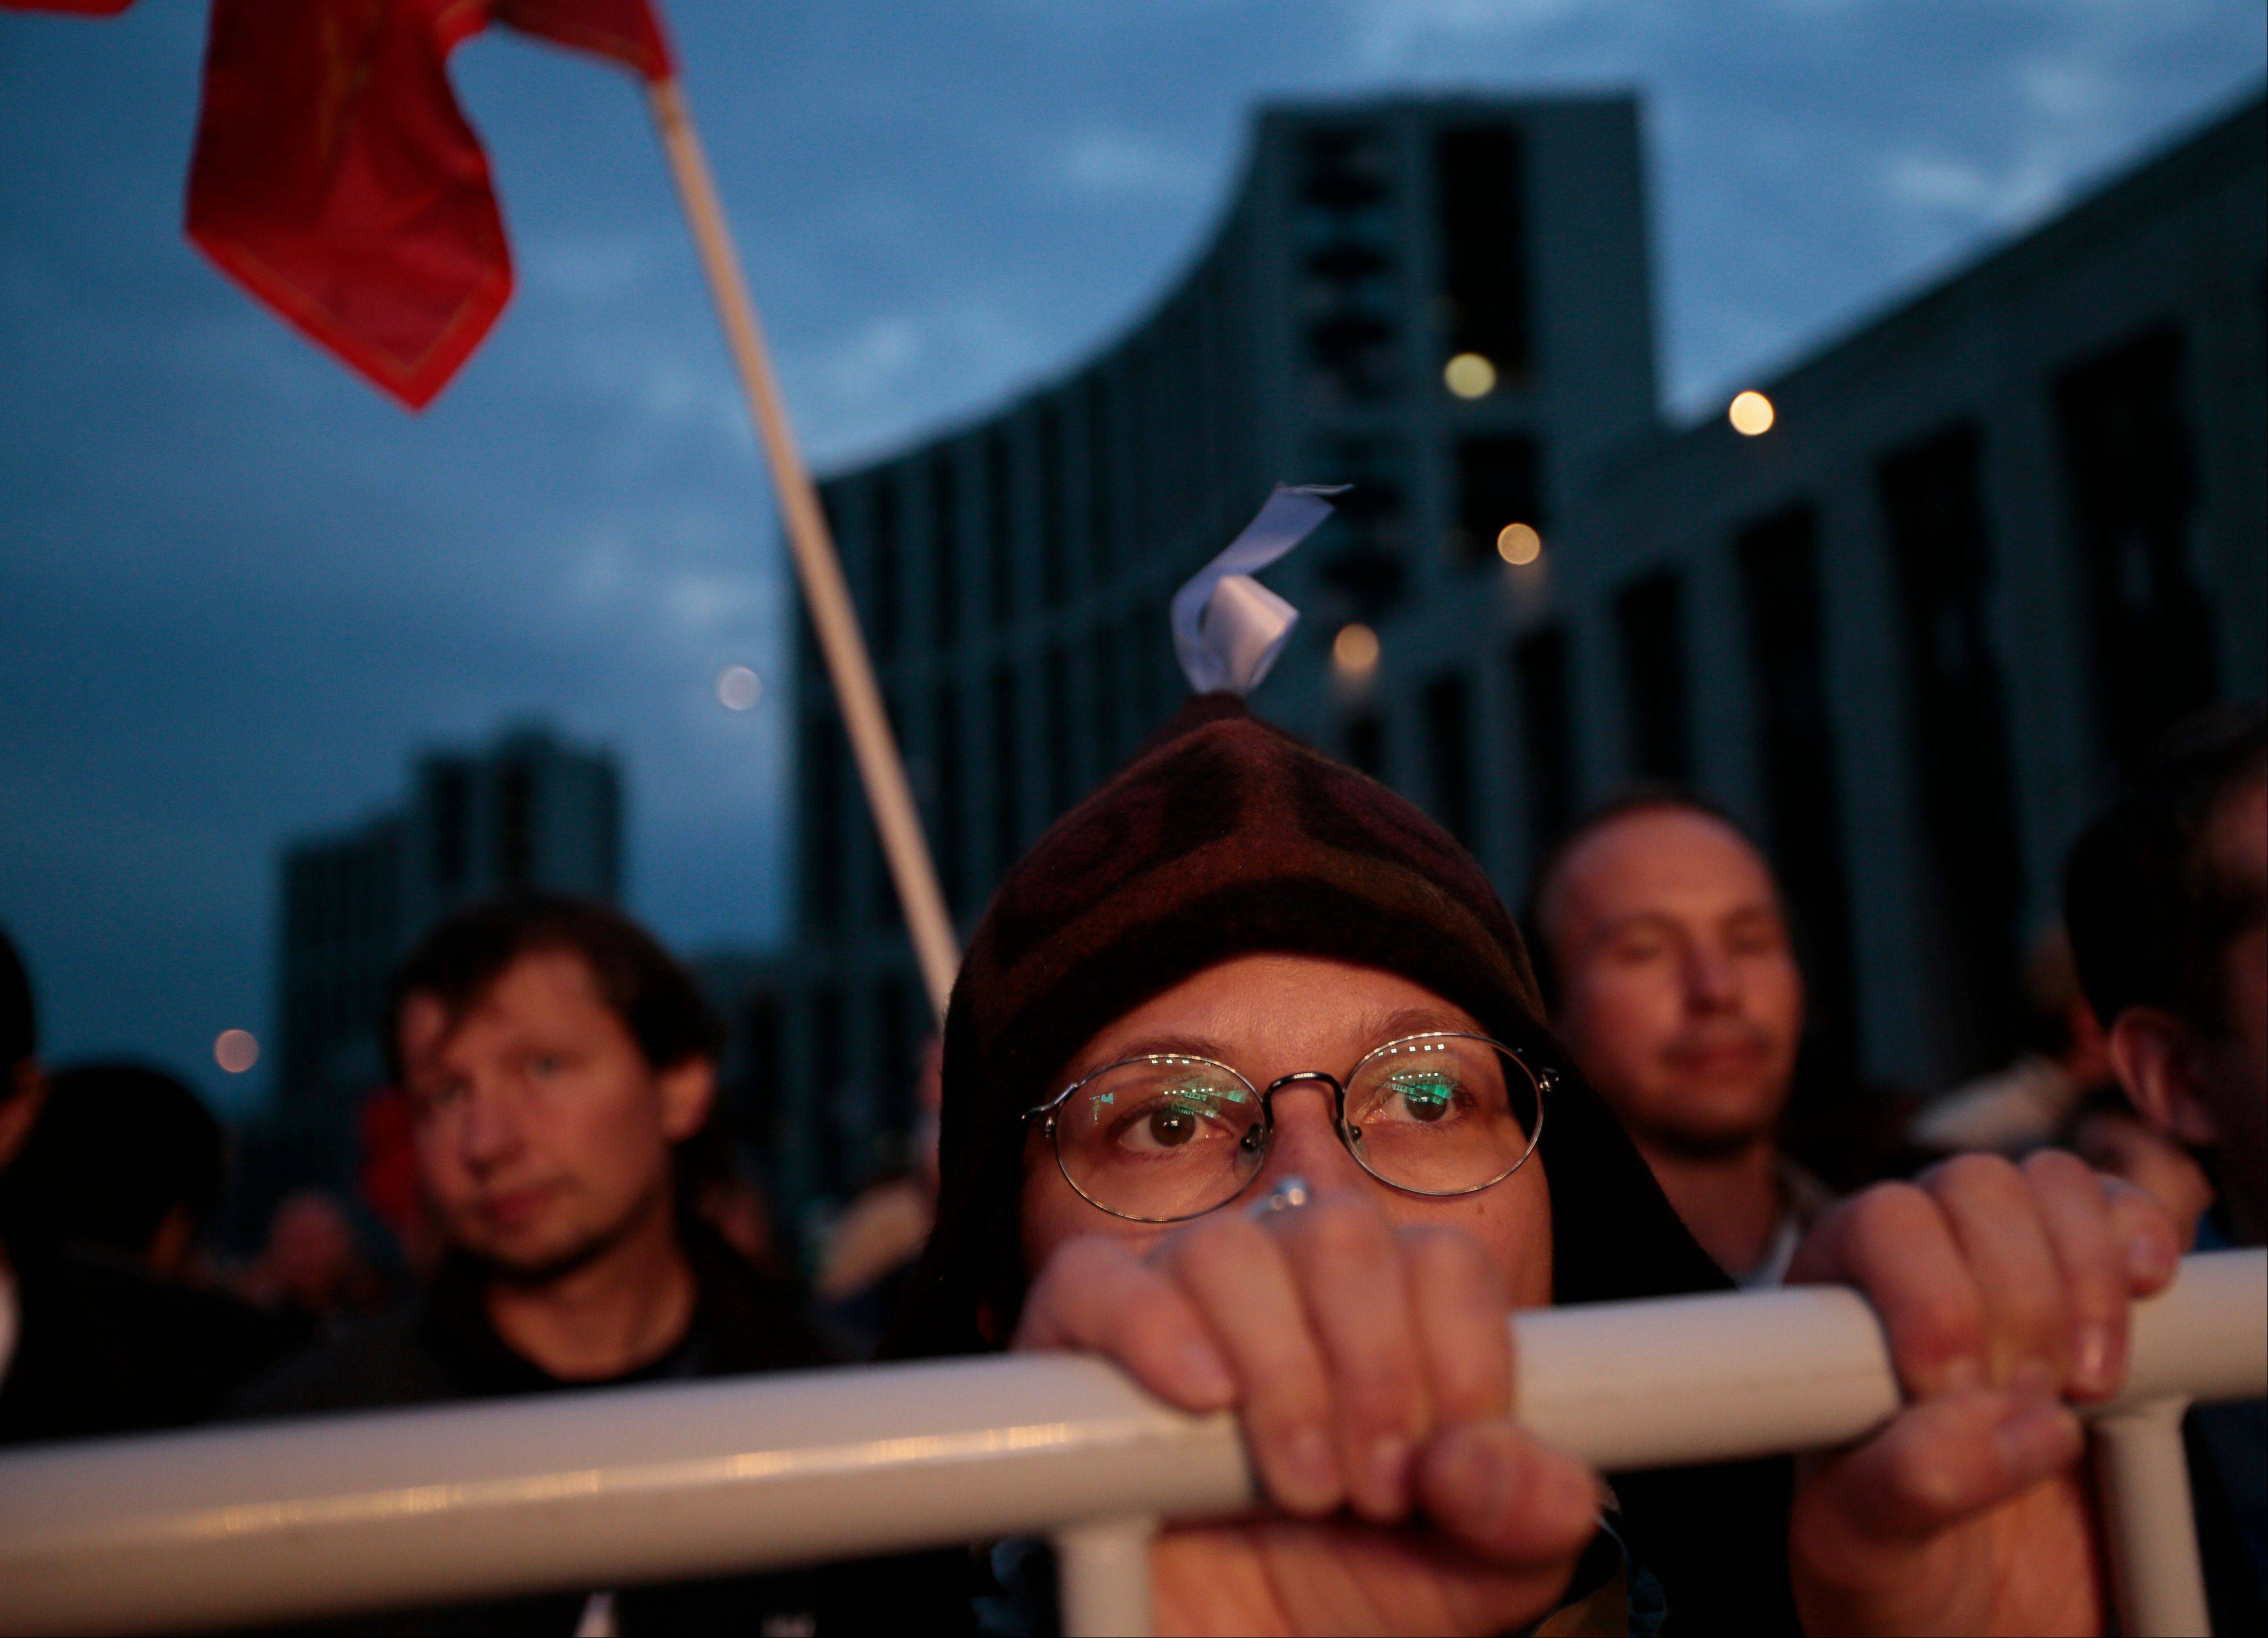 An opposition protester listens to an orator Saturday during a protest rally in Moscow.